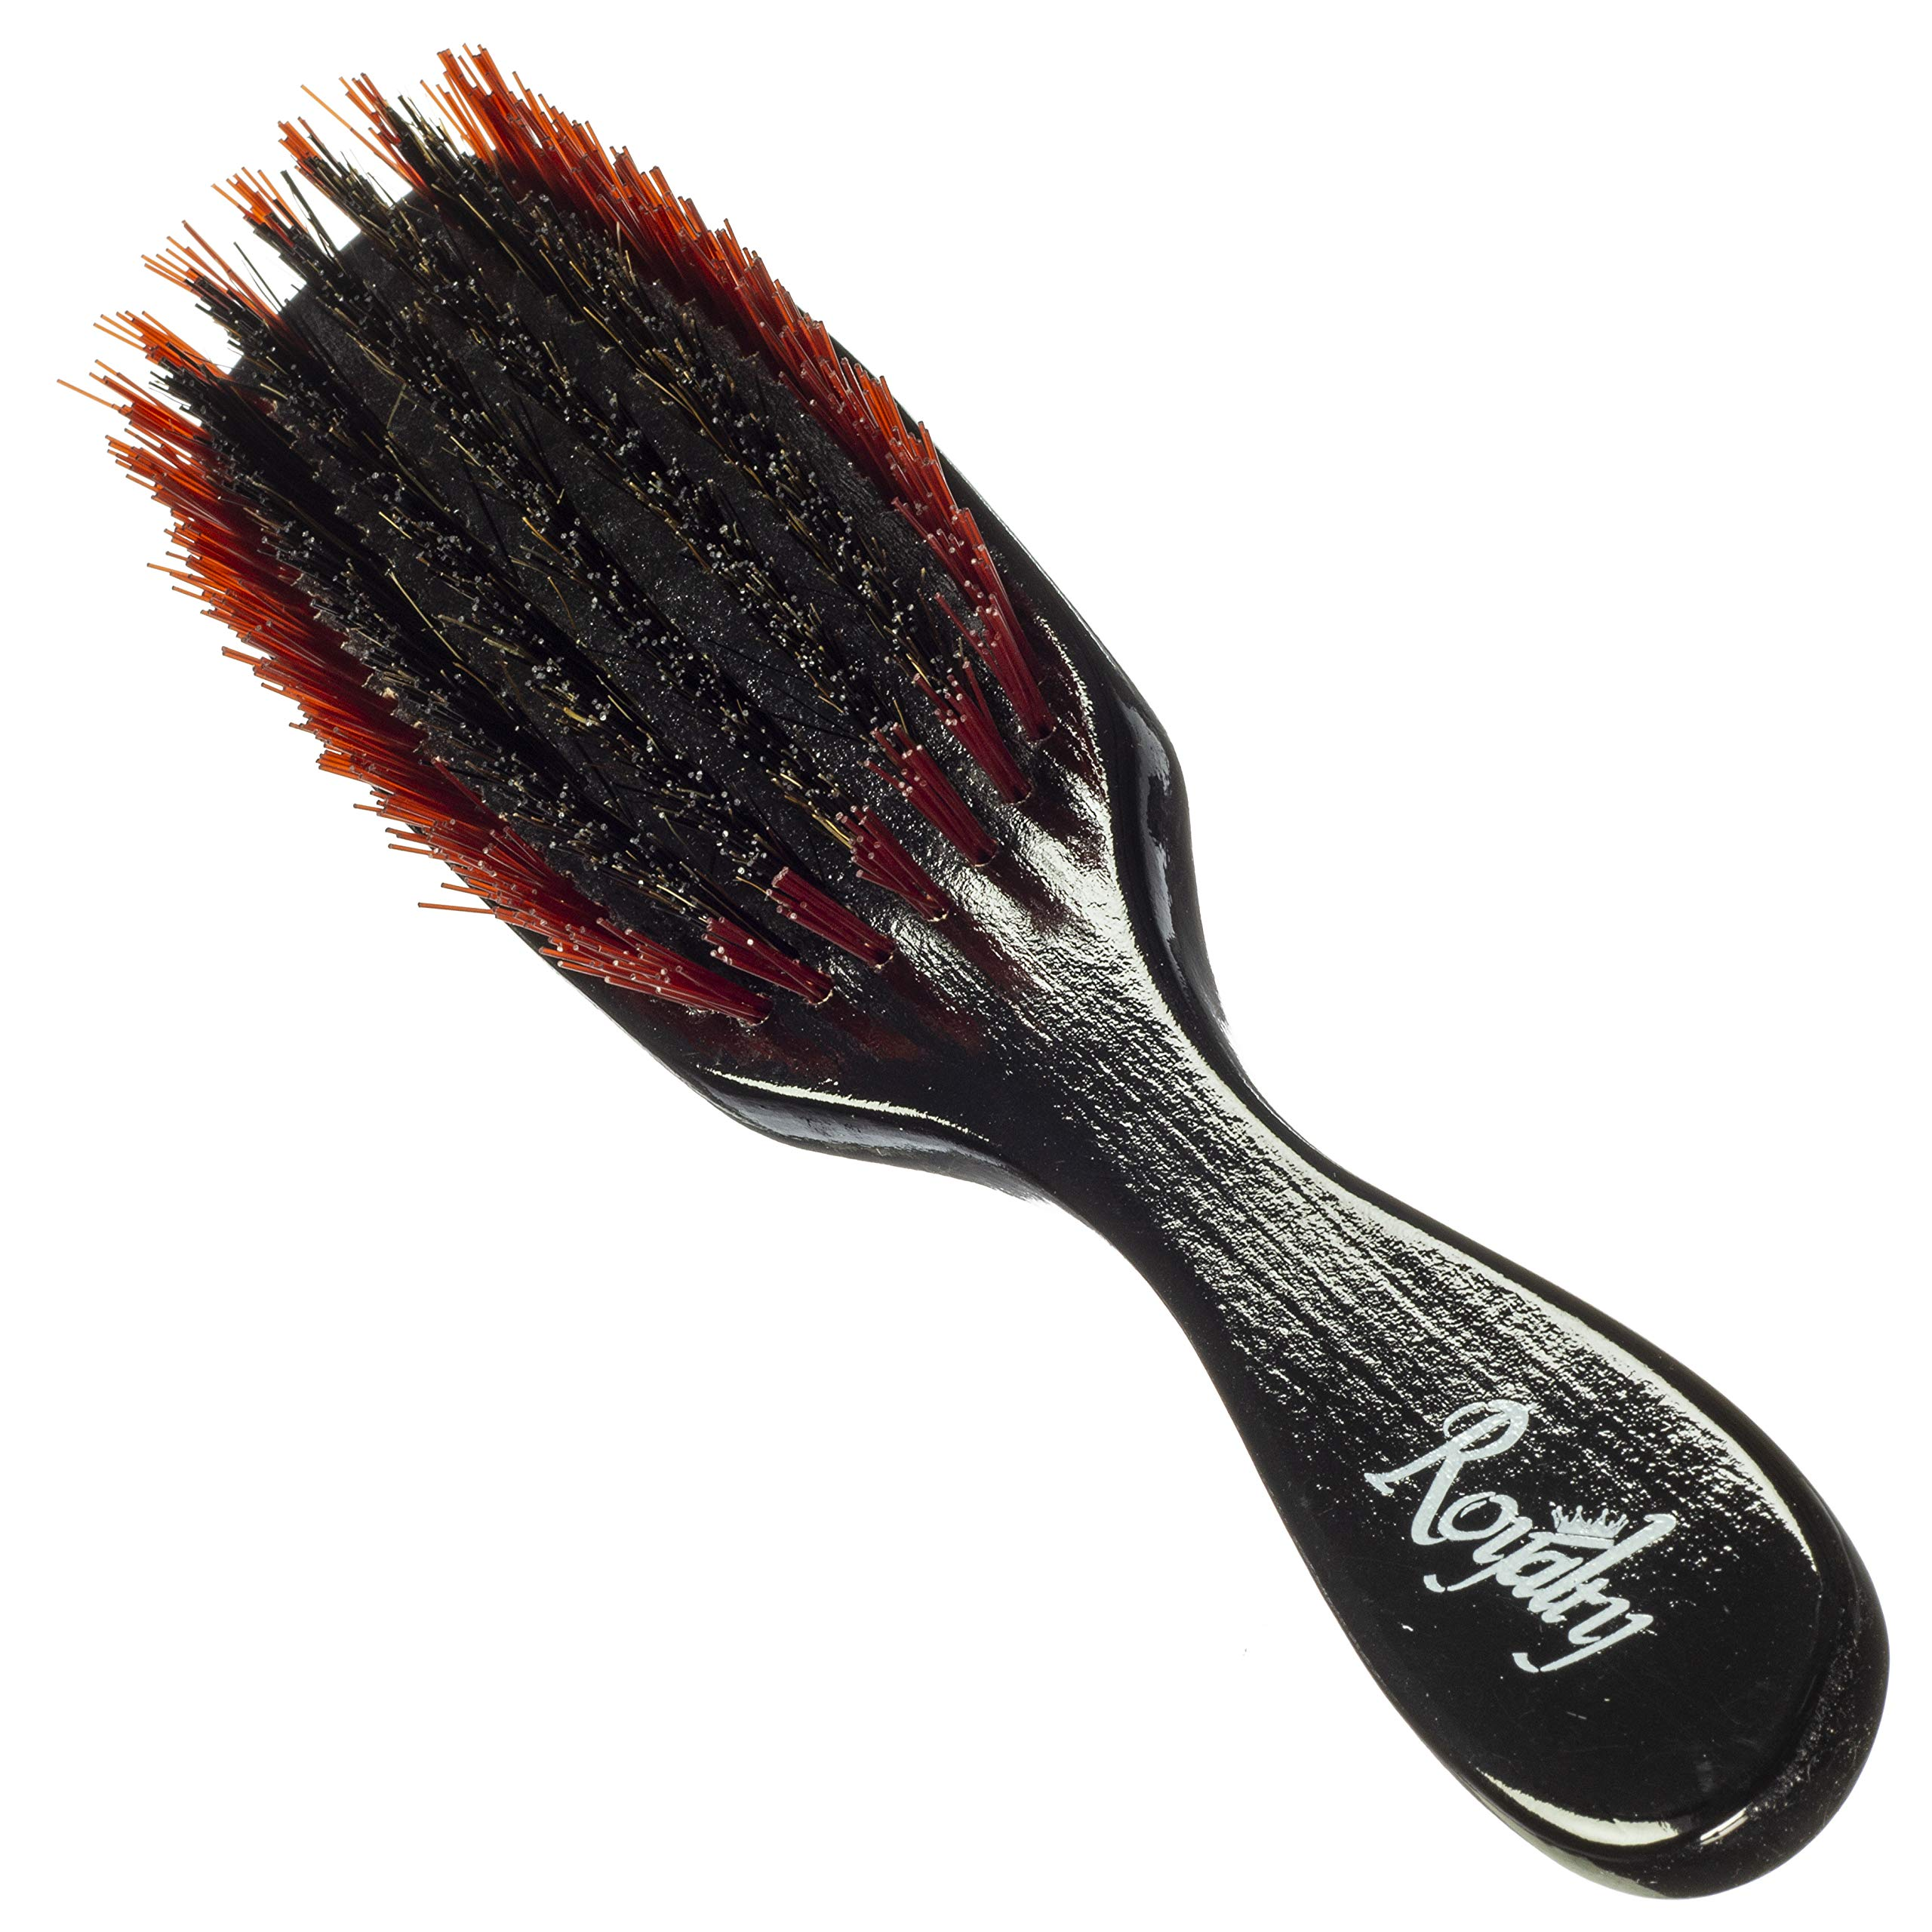 Royalty By Brush King Wave Brush #722- 7 row Medium Hard - Good 360 waves brush for wolfing - From the maker of Torino Pro